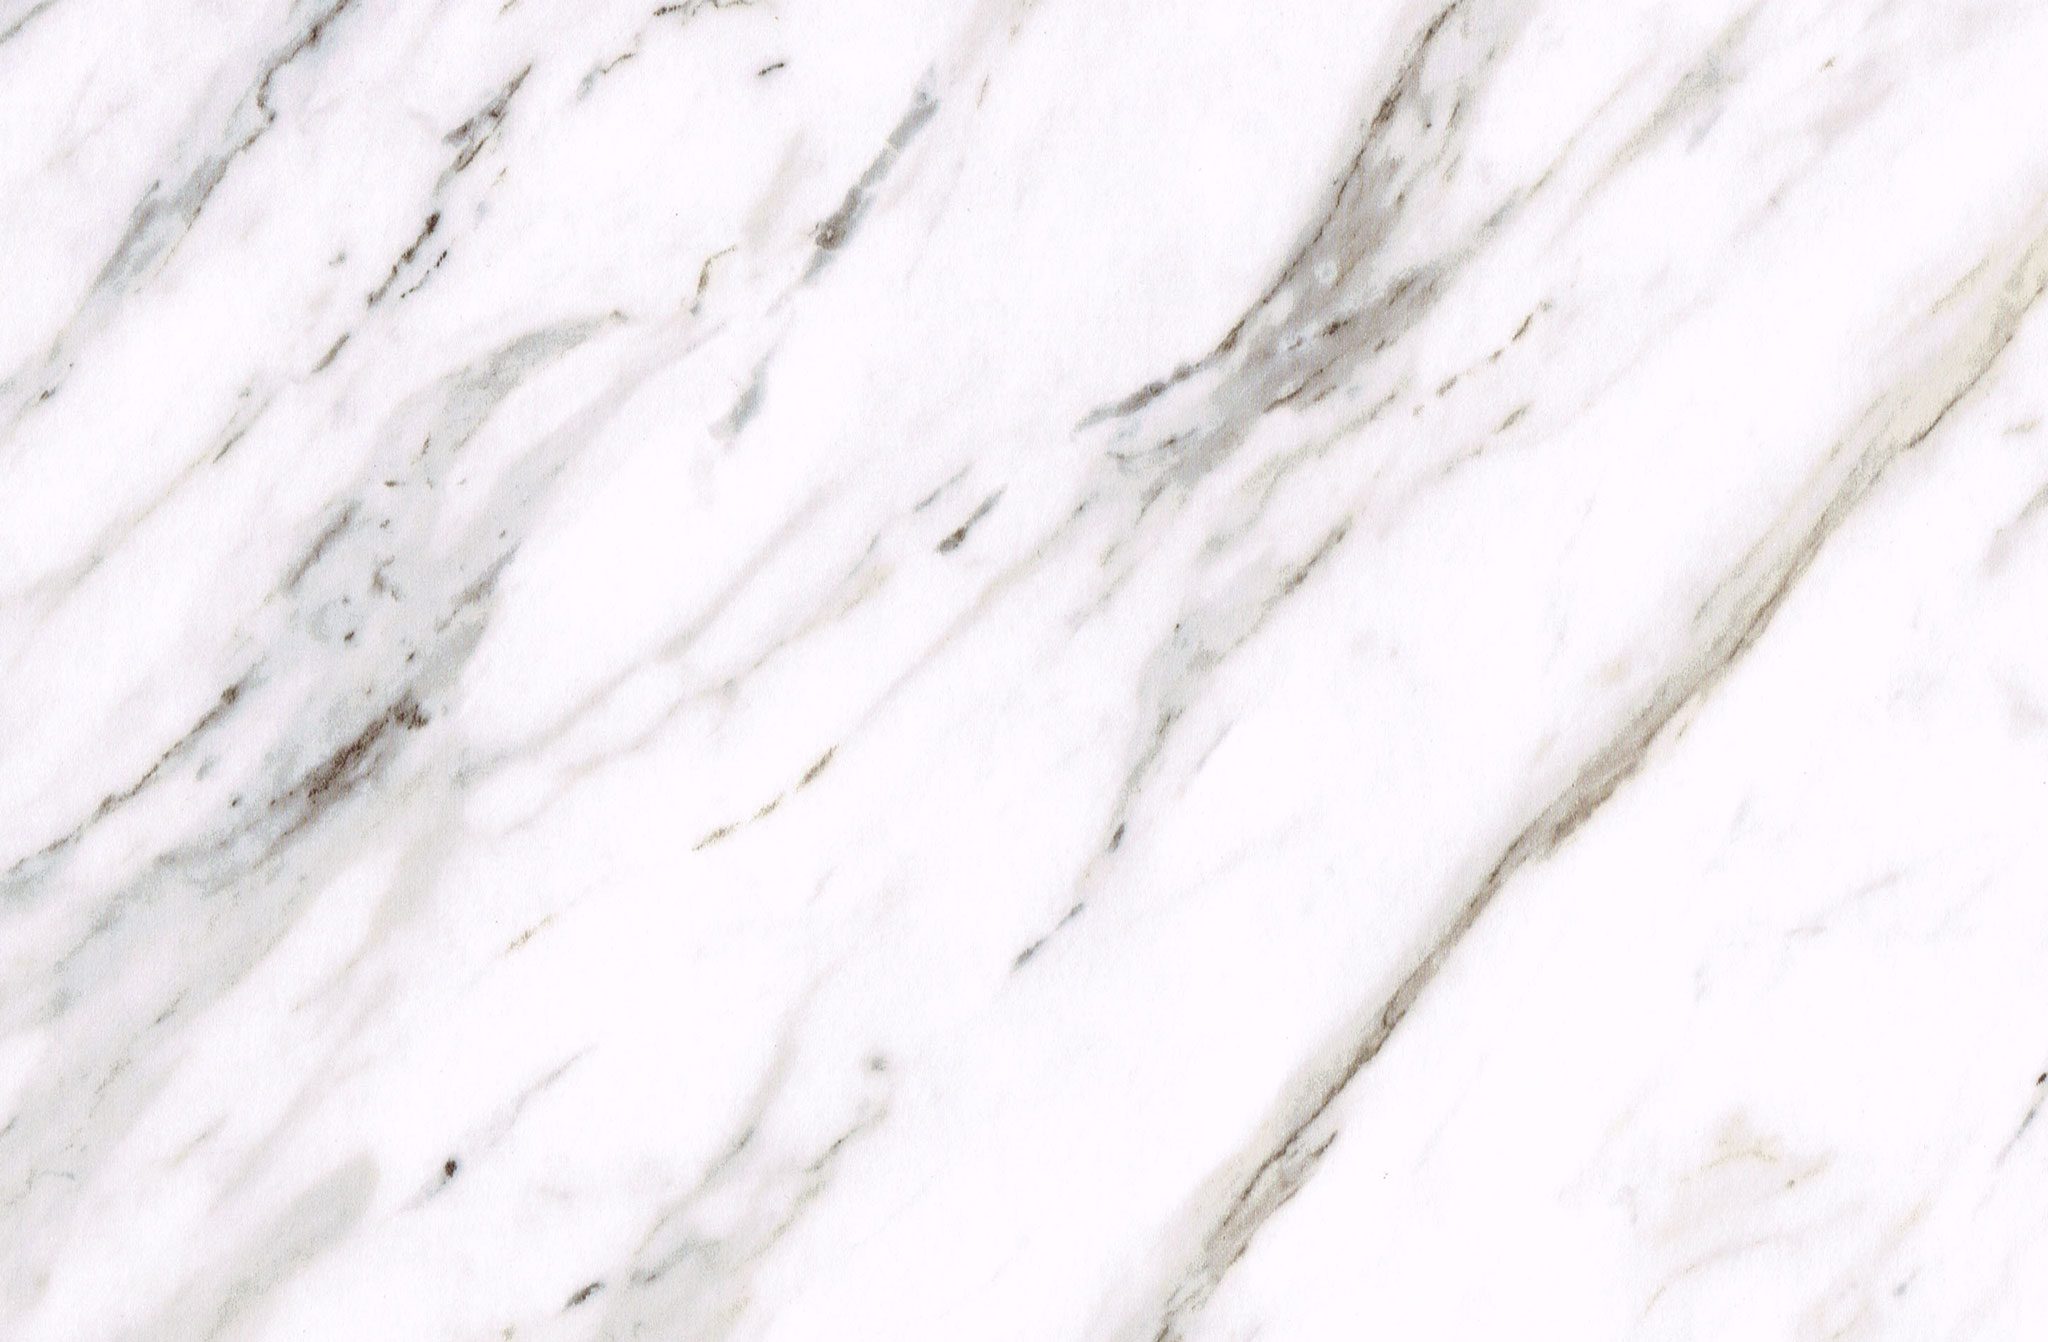 Aeon Calcutta Marble A Unique Choice